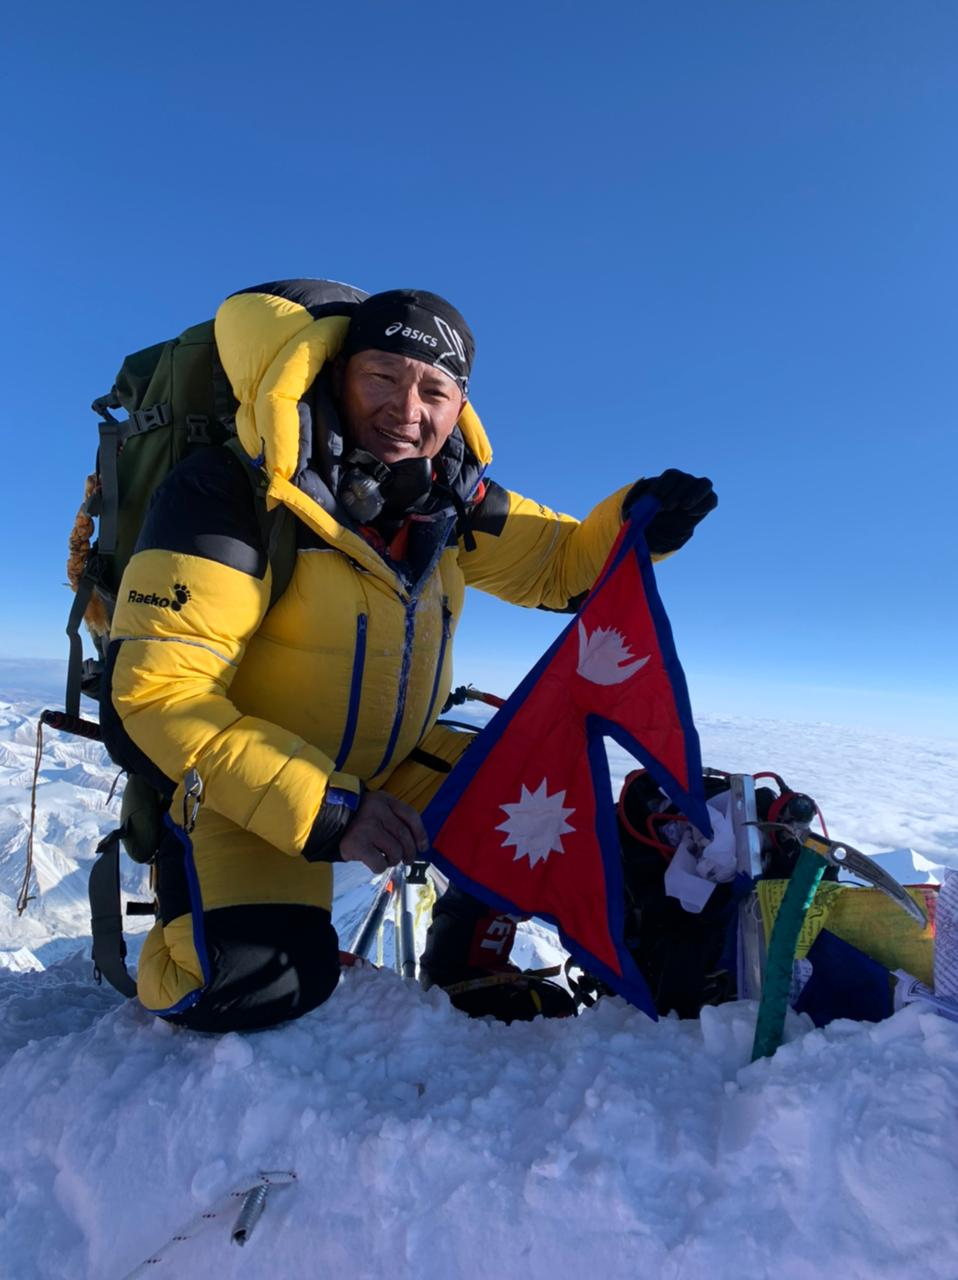 Covid couldn't stop me to climb mount Everest – climber Sherpa